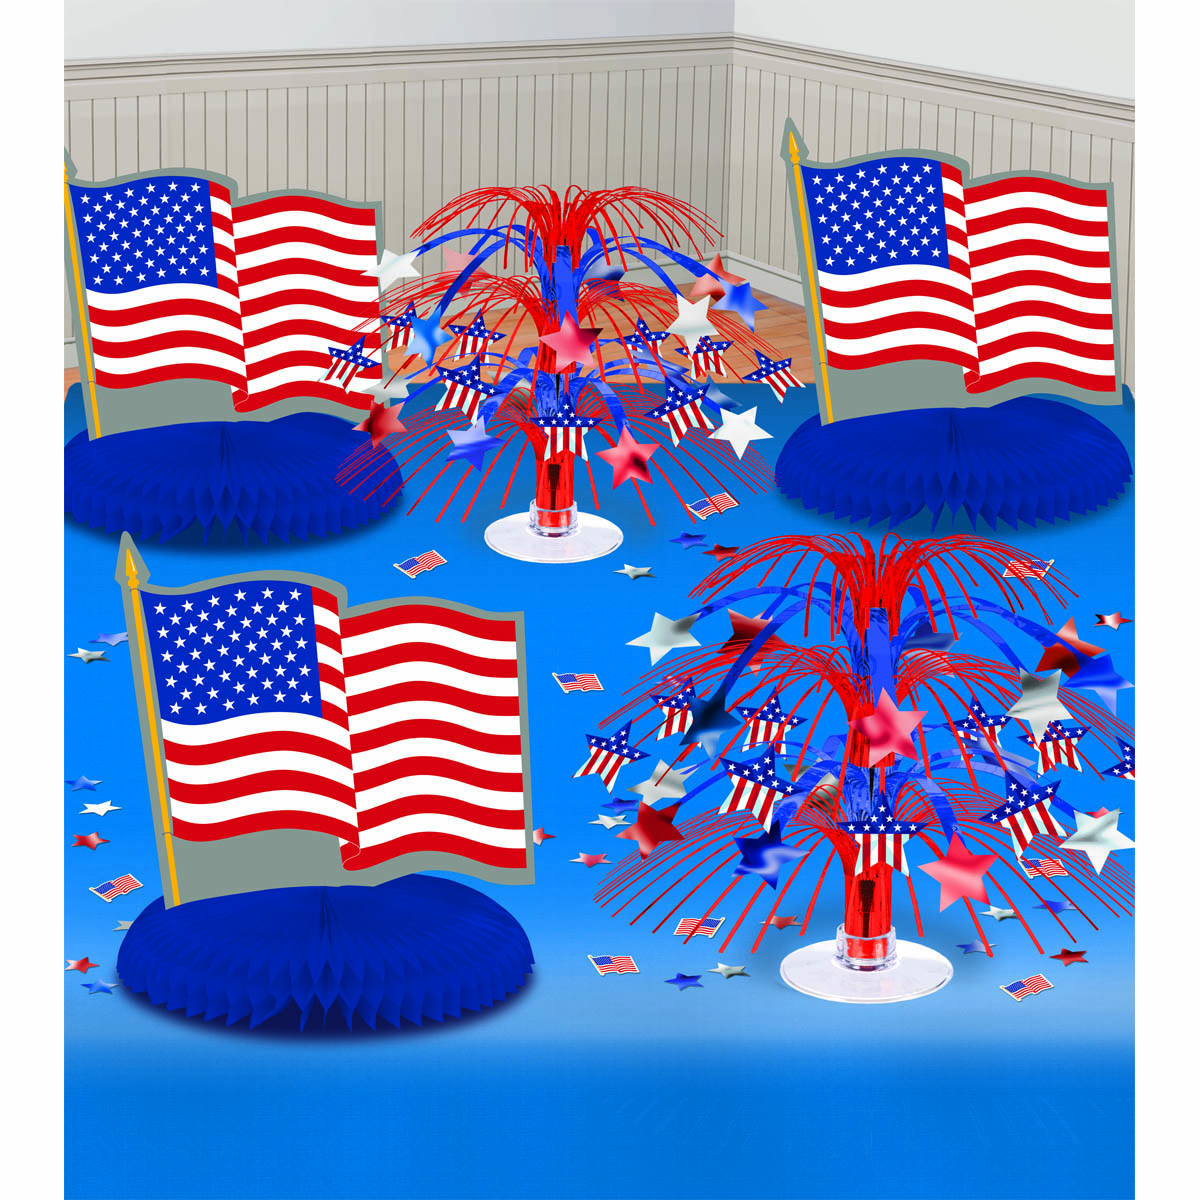 Flgpdec1000009094 00 patriotic table decorating kit for 4 of july decorations